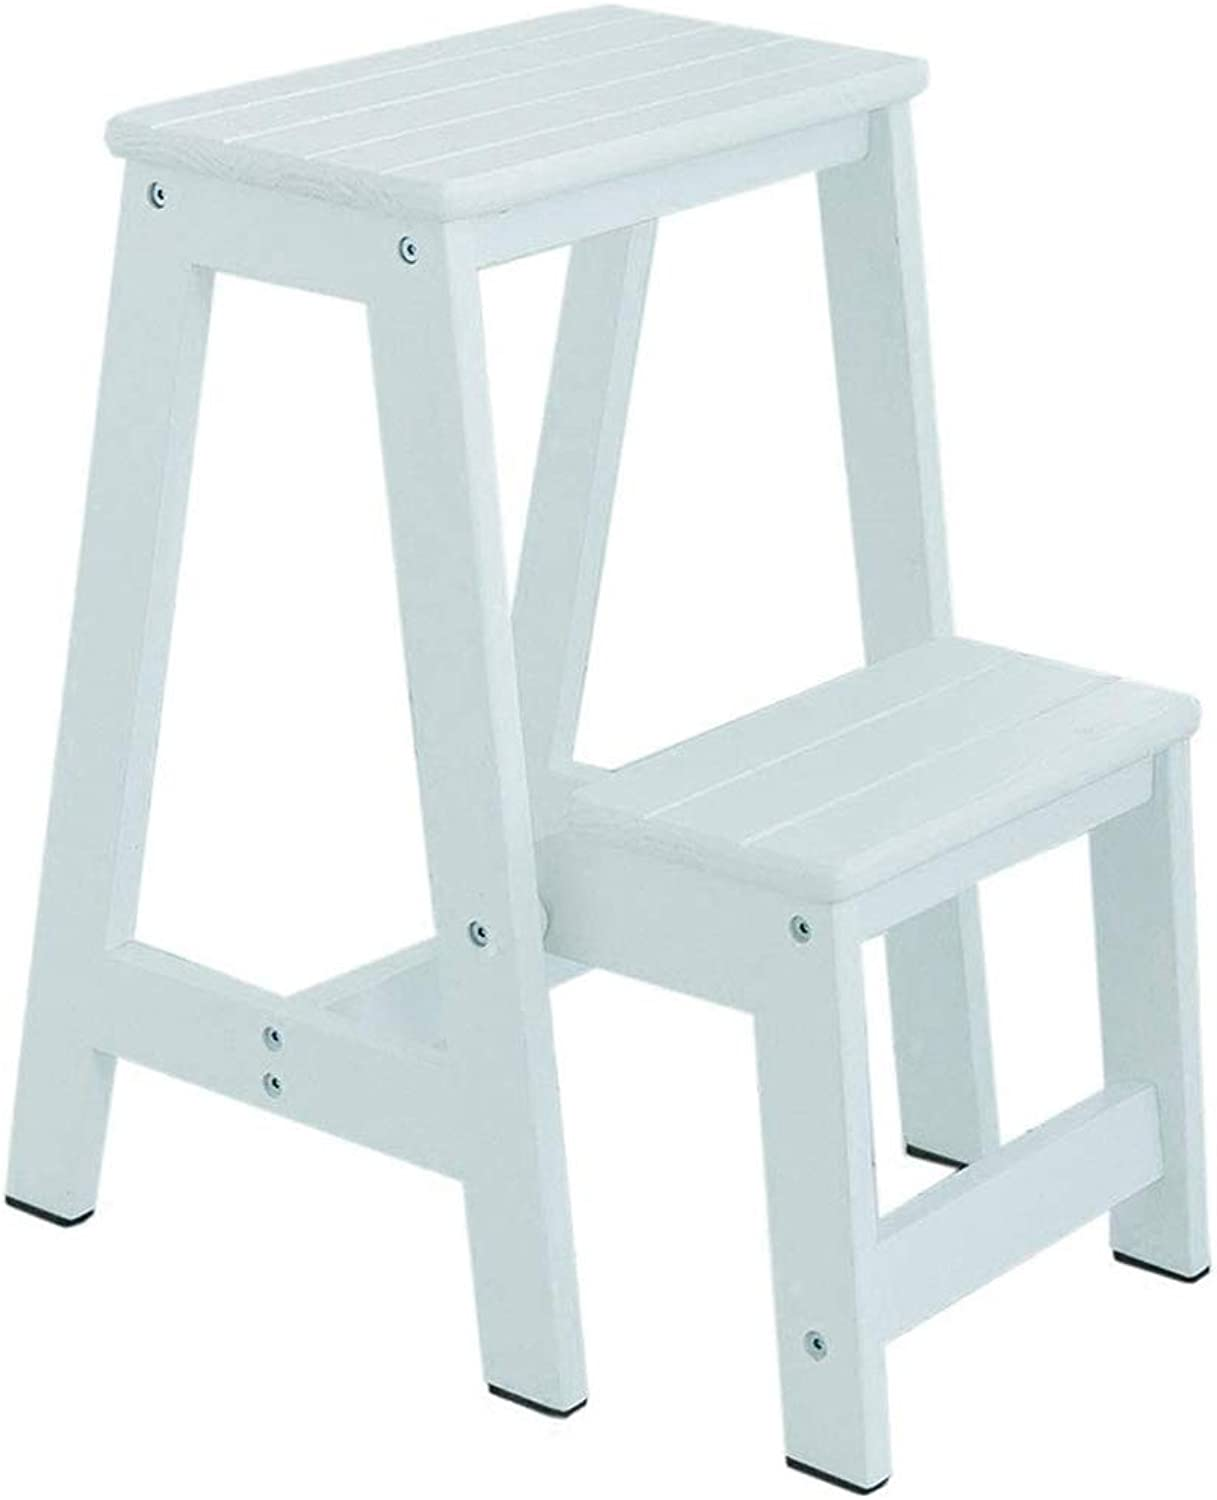 Stair Stool Two-Story Solid Wood Folding Ladder Multi-Function Combination Step Stools